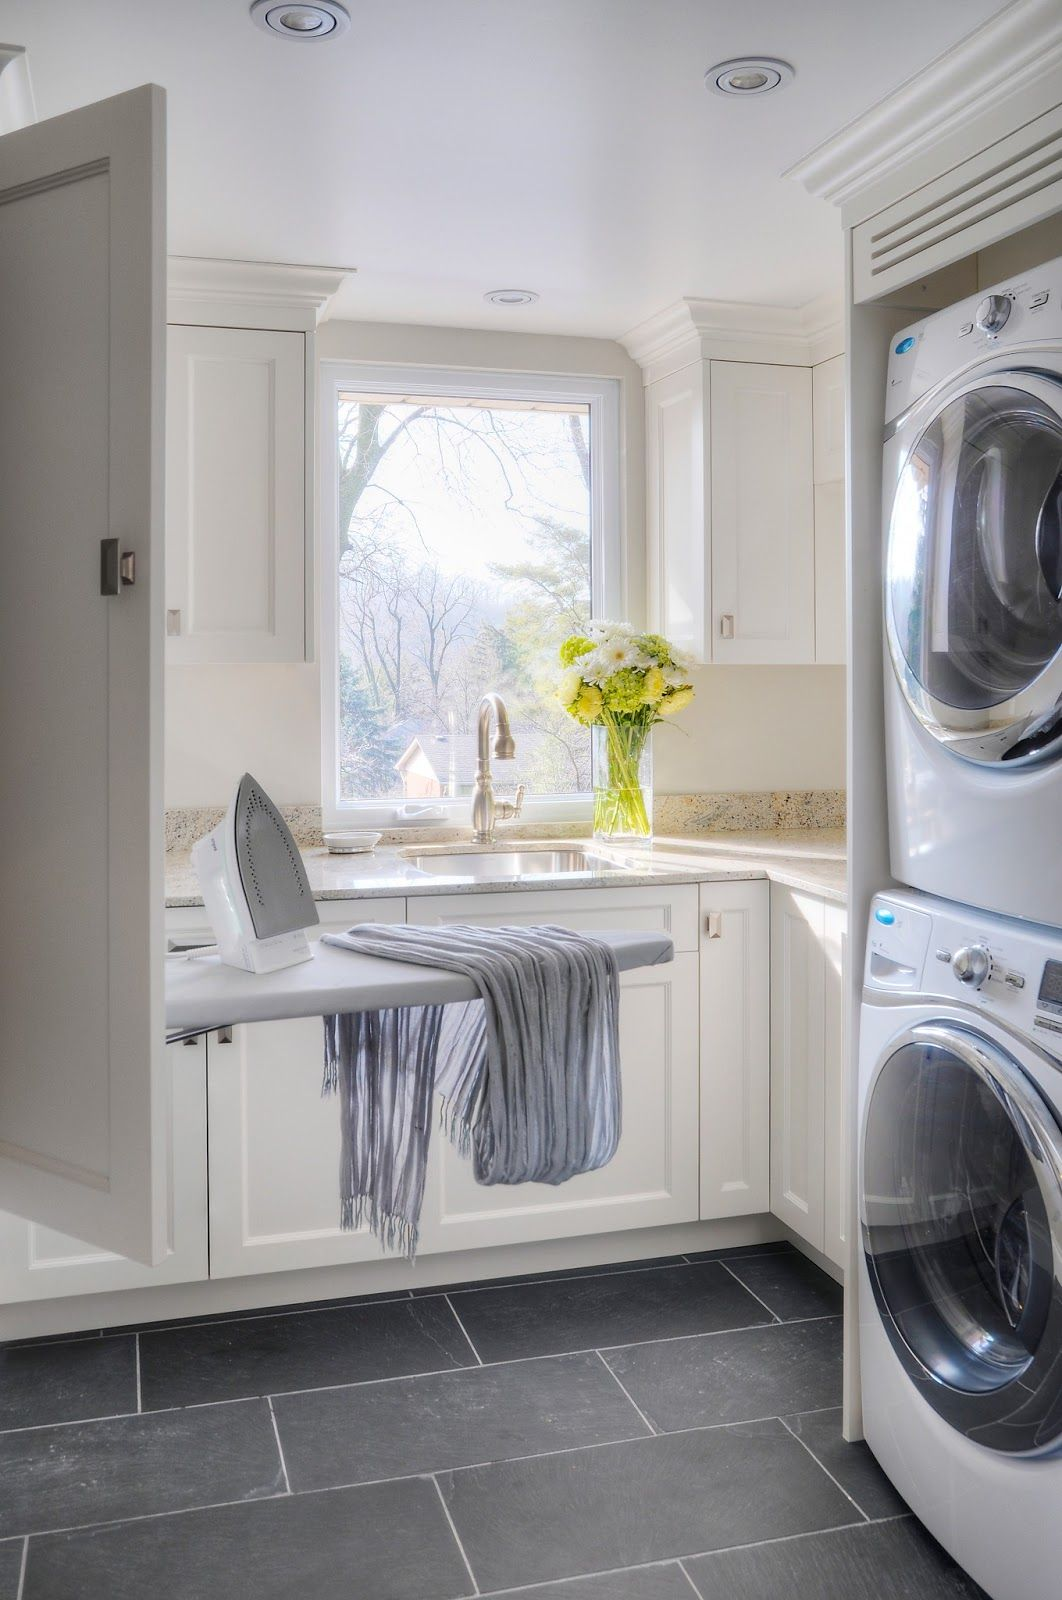 Window floors drop down ironing board laundry rooms for Laundry room floor ideas